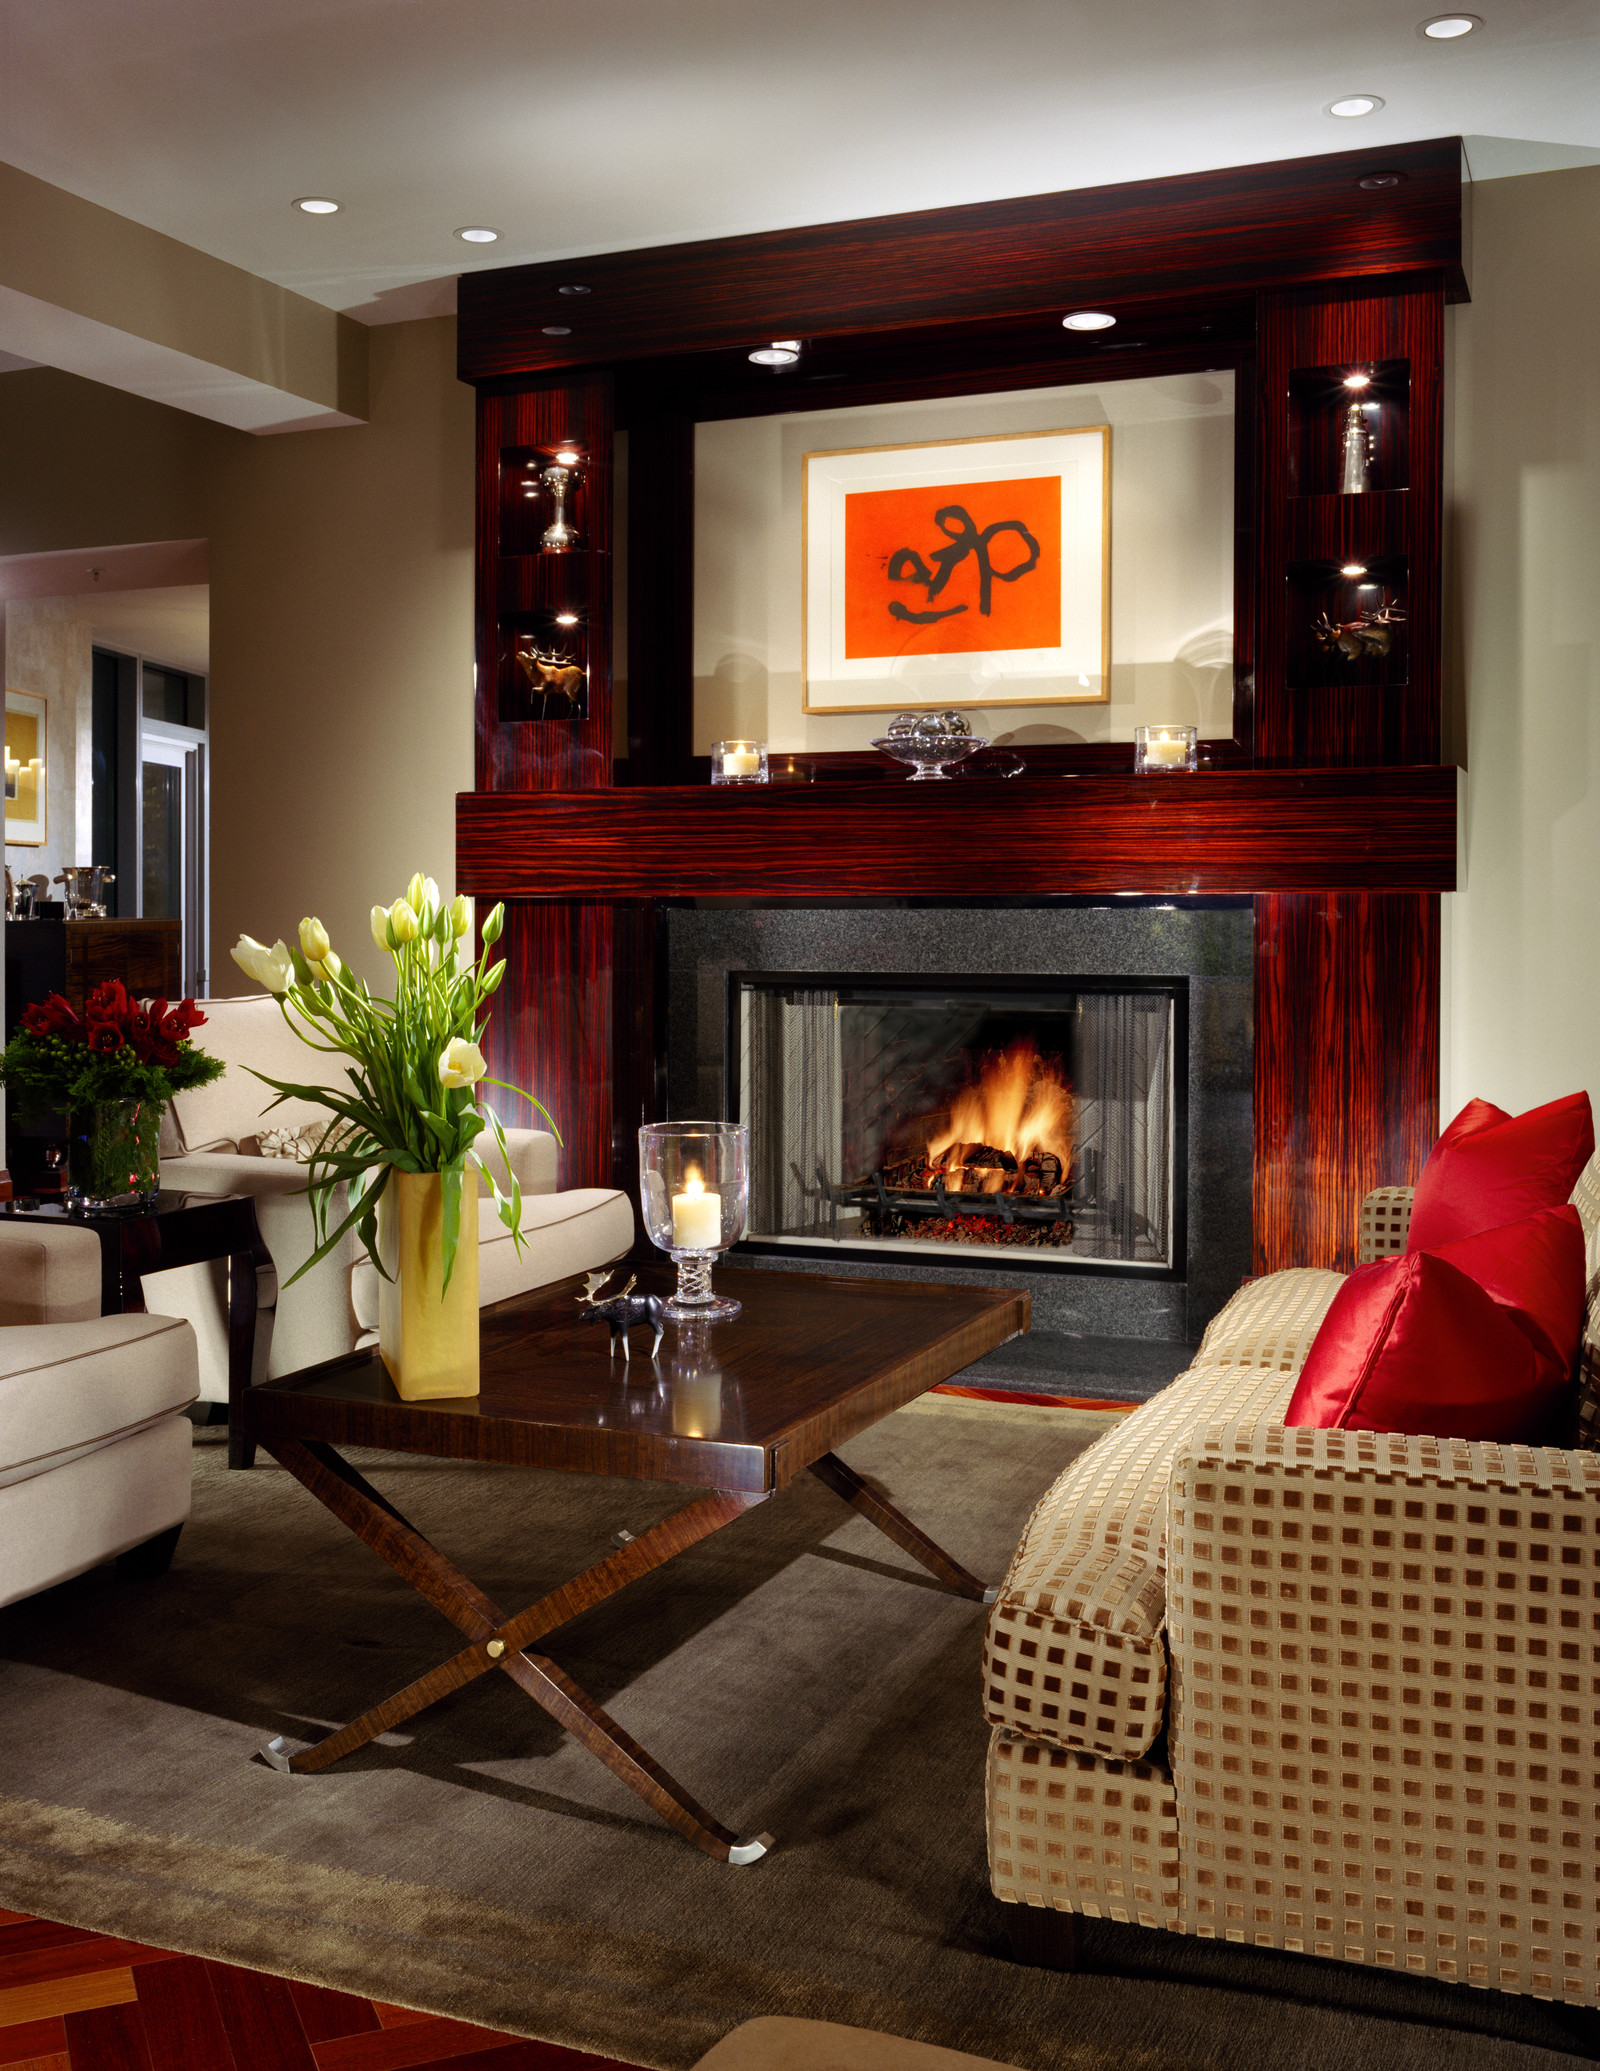 This beautiful custom mantel highlights this contemporary home